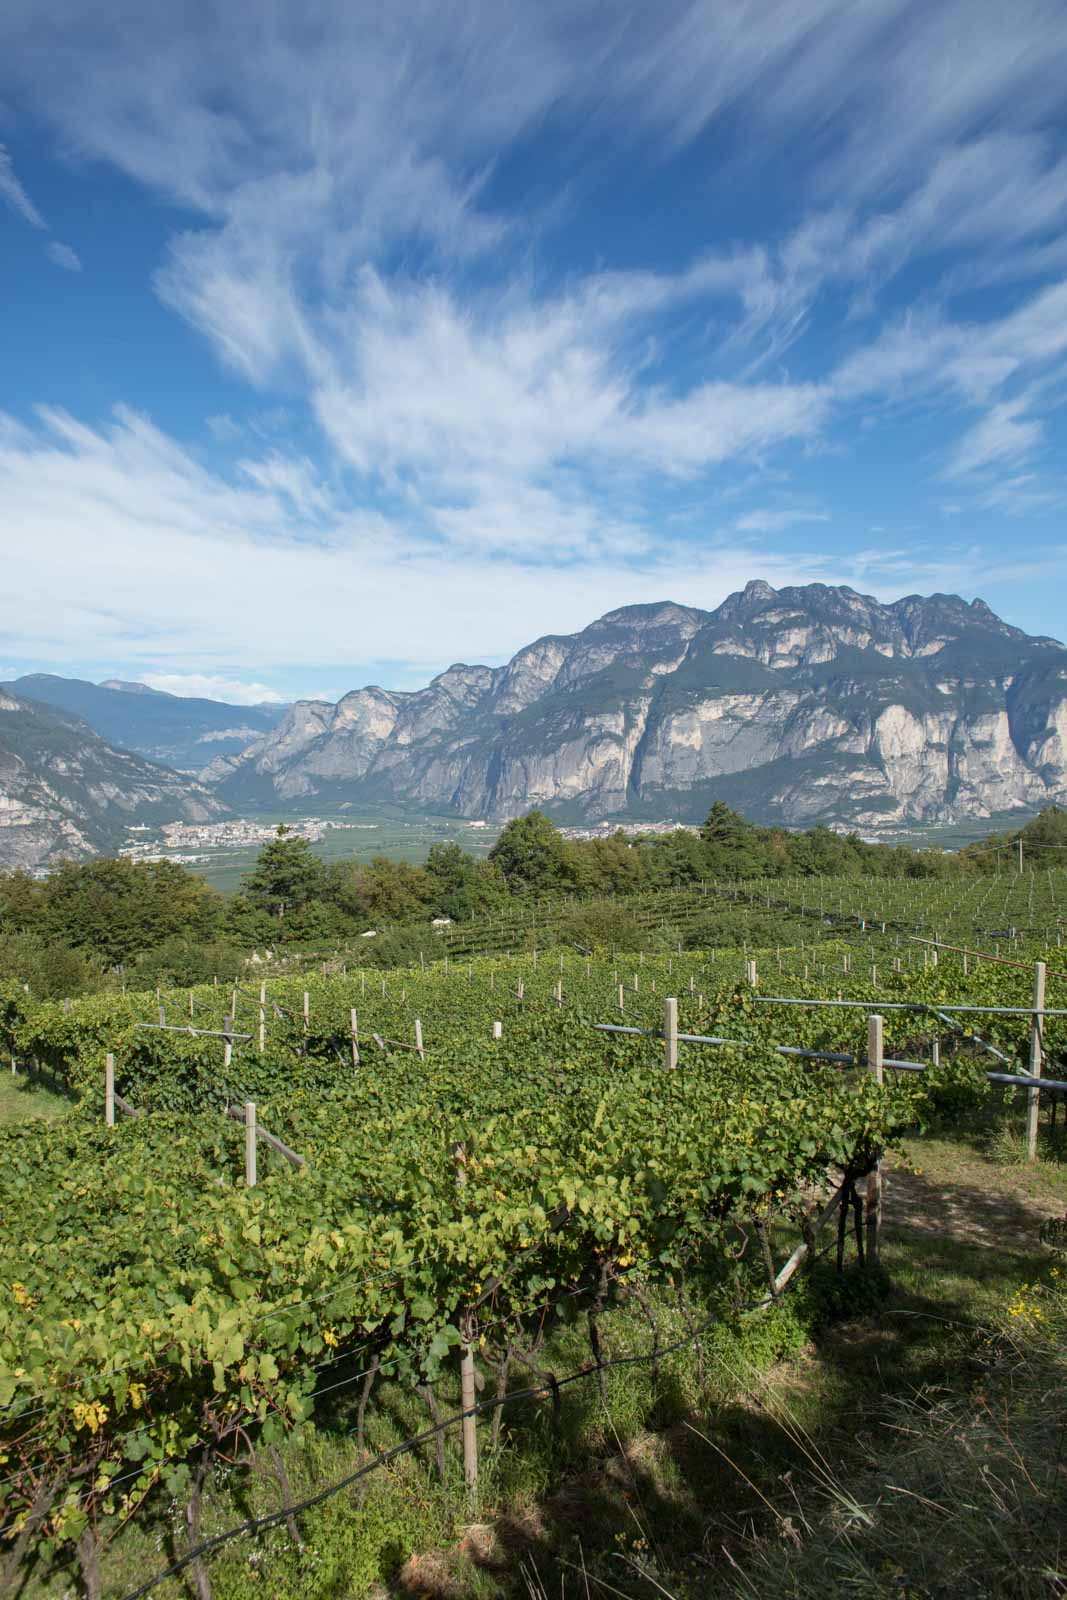 A view over the Campo Rotaliano from the Sette Fontane vineyard. Imagine this valley filled with a giant glacier, and you get a sense for how it was carved. ©Kevin Day/Opening a Bottle